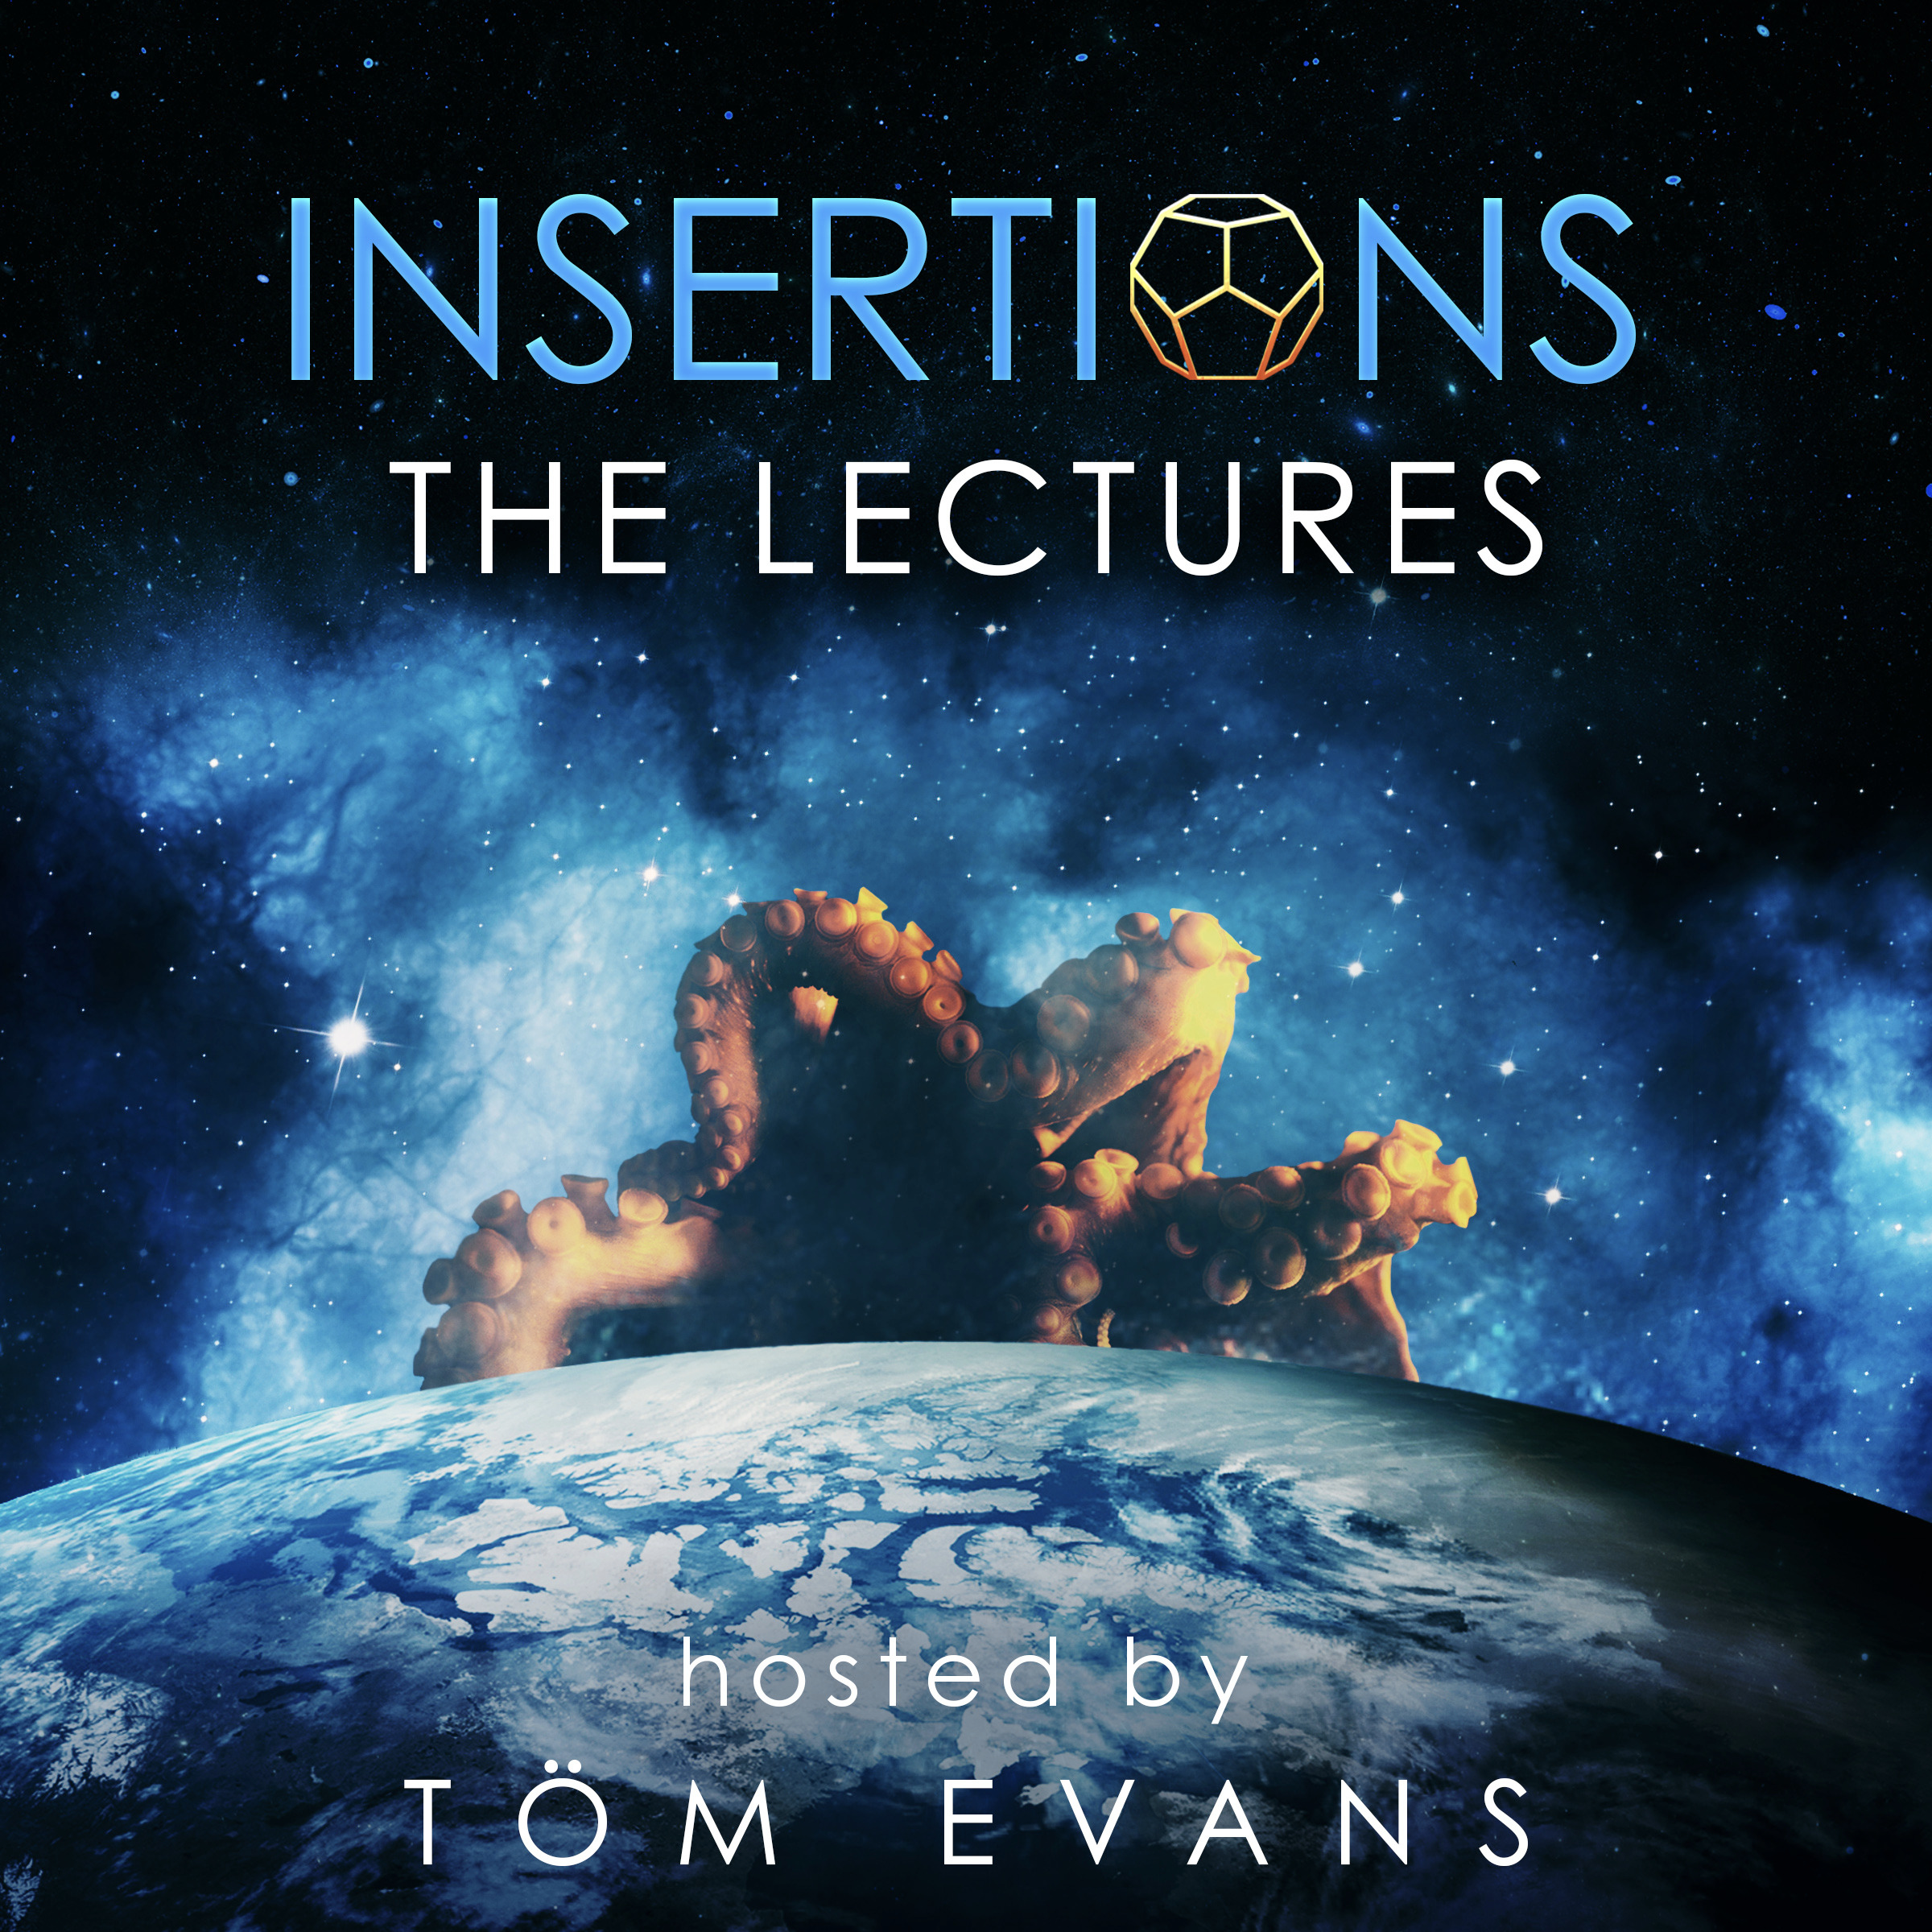 Insertions : The Lectures